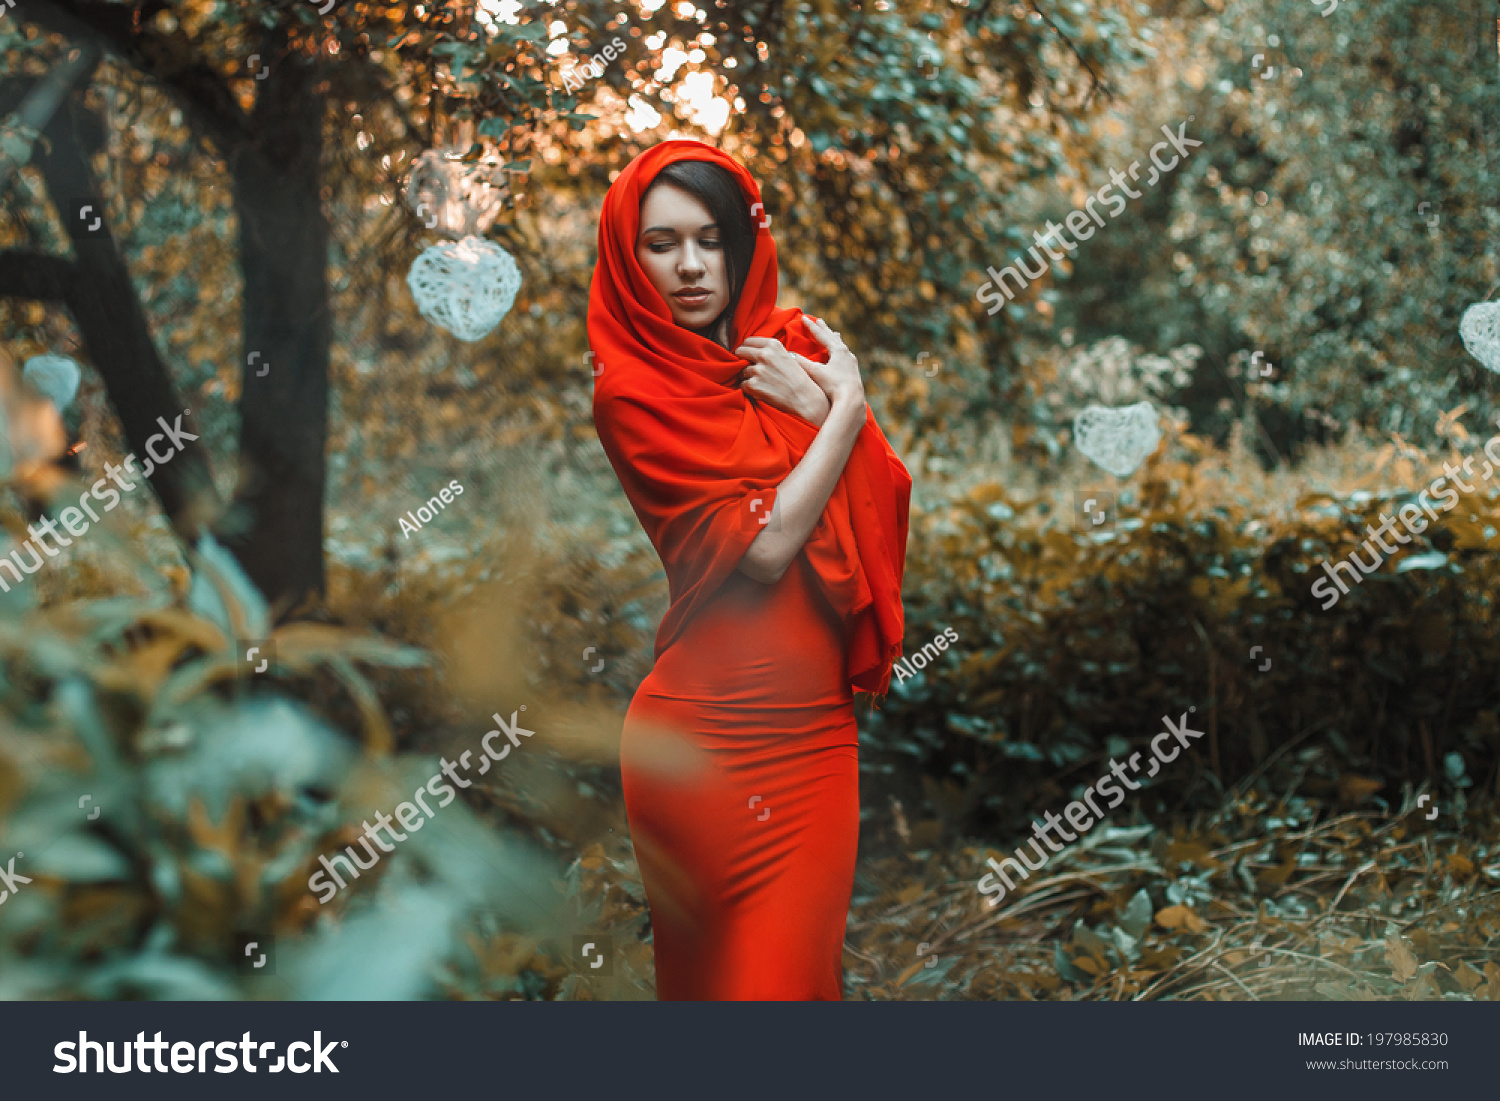 The dress garden - Glorious Girl In A Red Dress In The Garden With Hearts